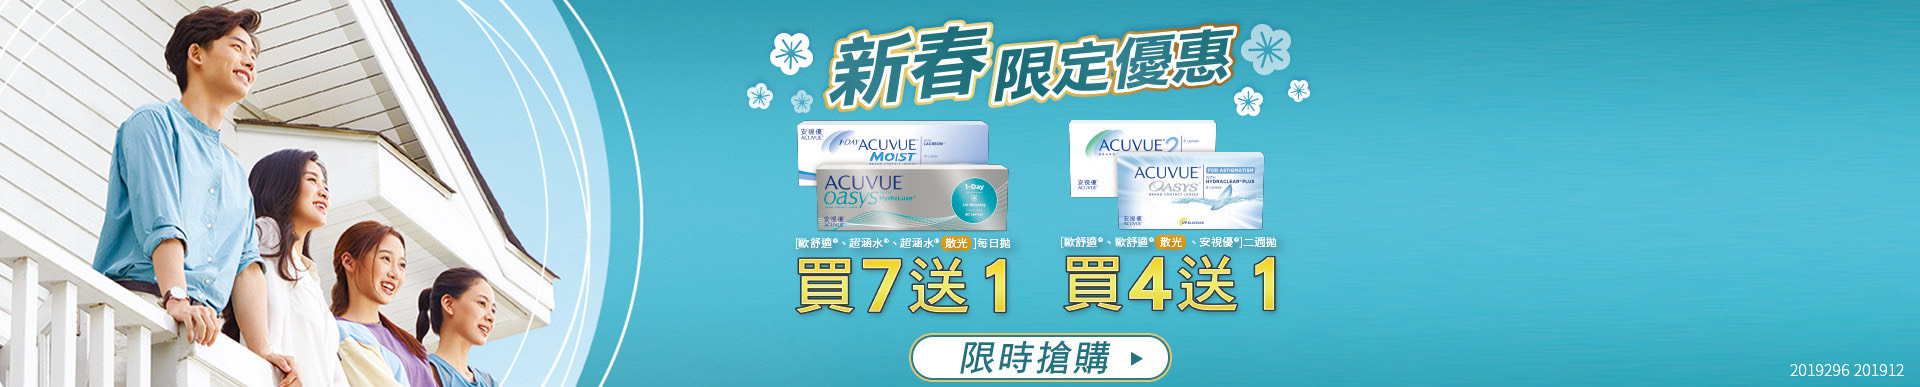 acuvue-promotion-homepage-banner.jpg